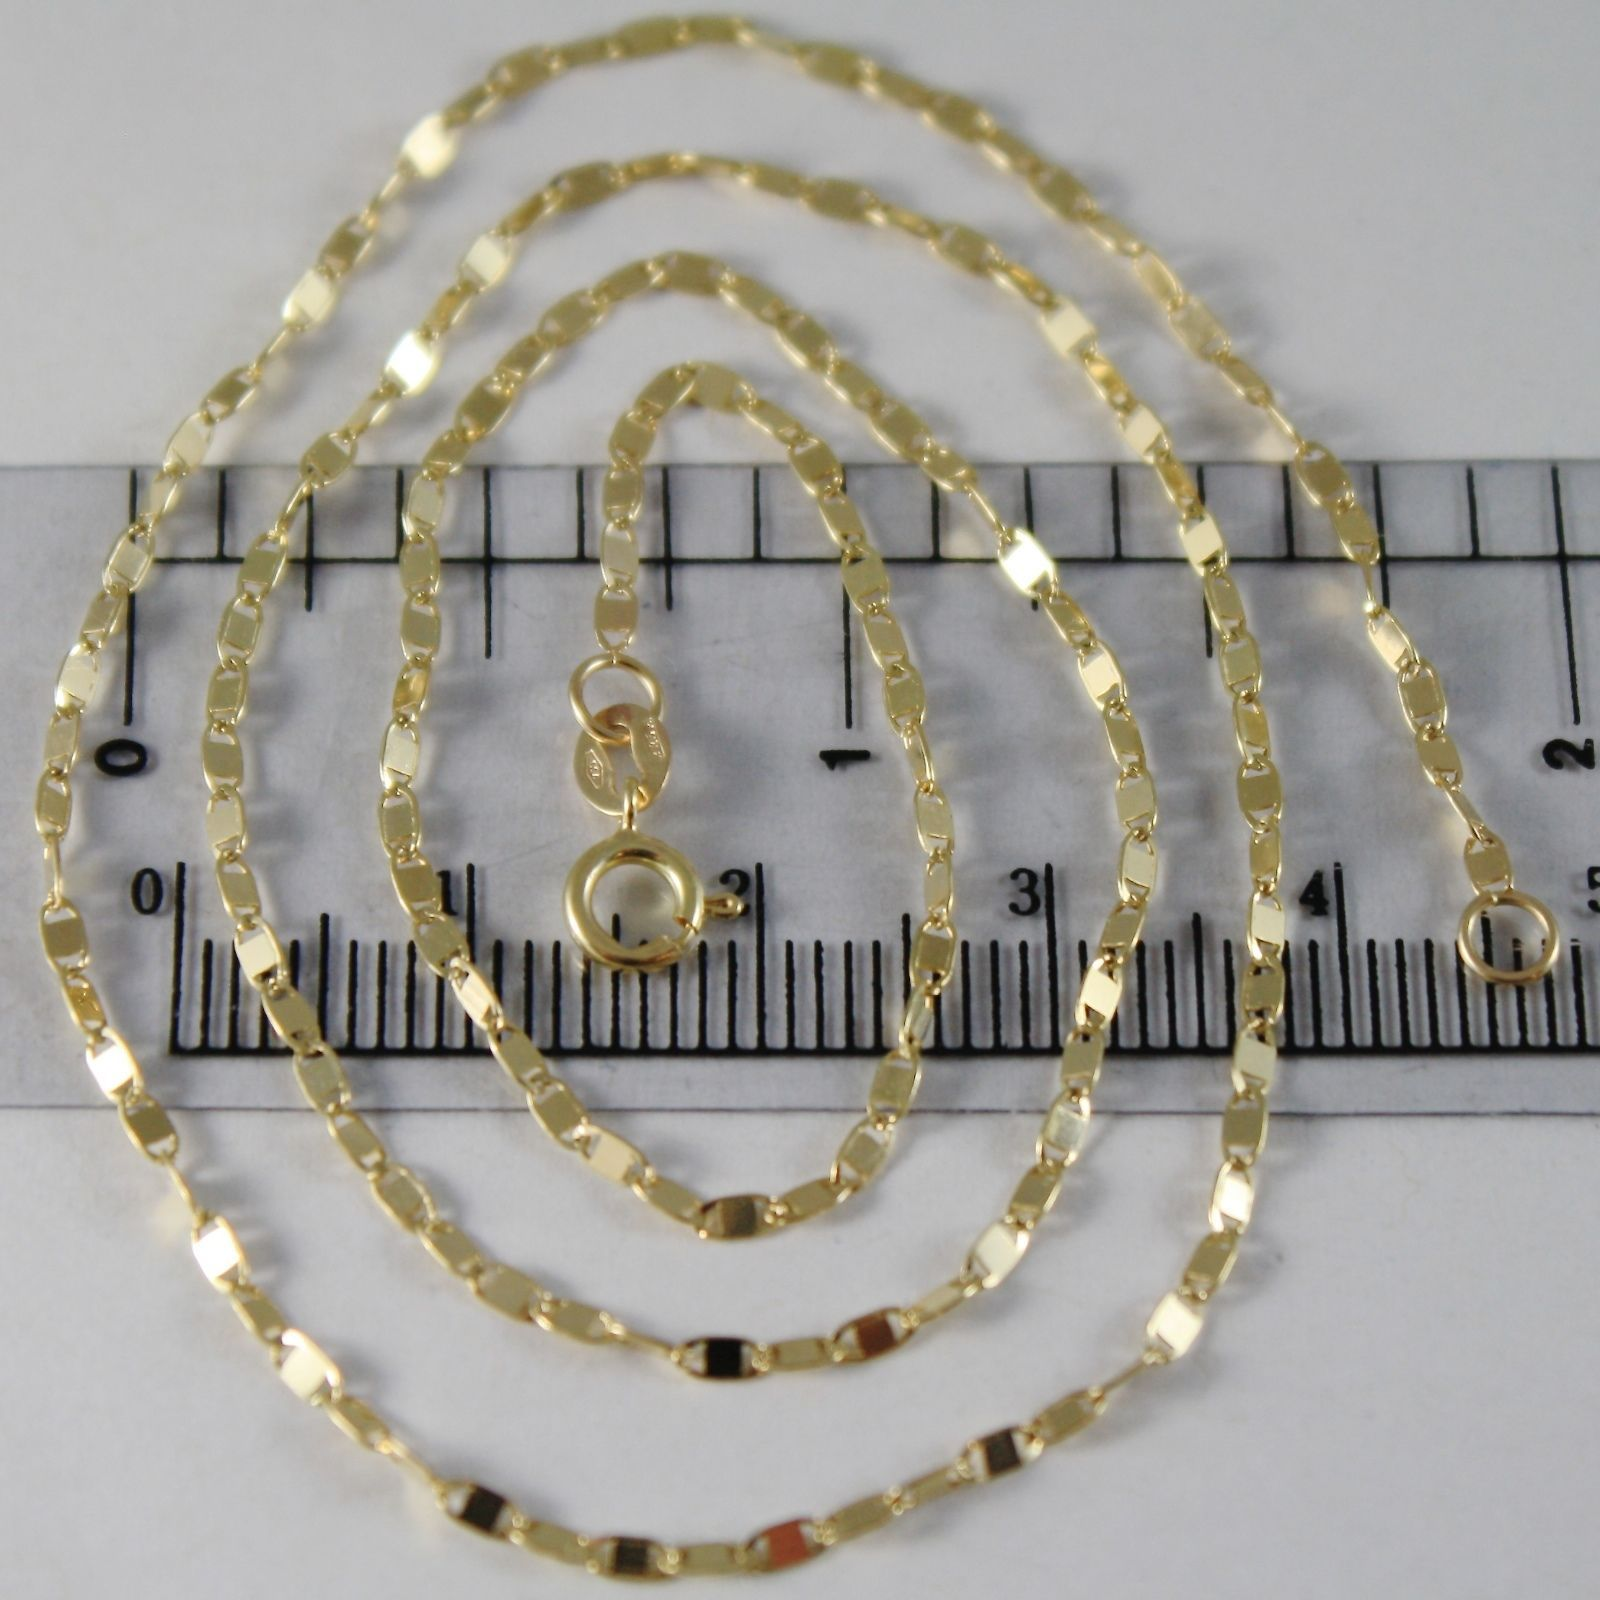 SOLID 18K YELLOW GOLD CHAIN 17.70 INCHES, MINI SQUARE LINK 1.8 MM, MADE IN ITALY